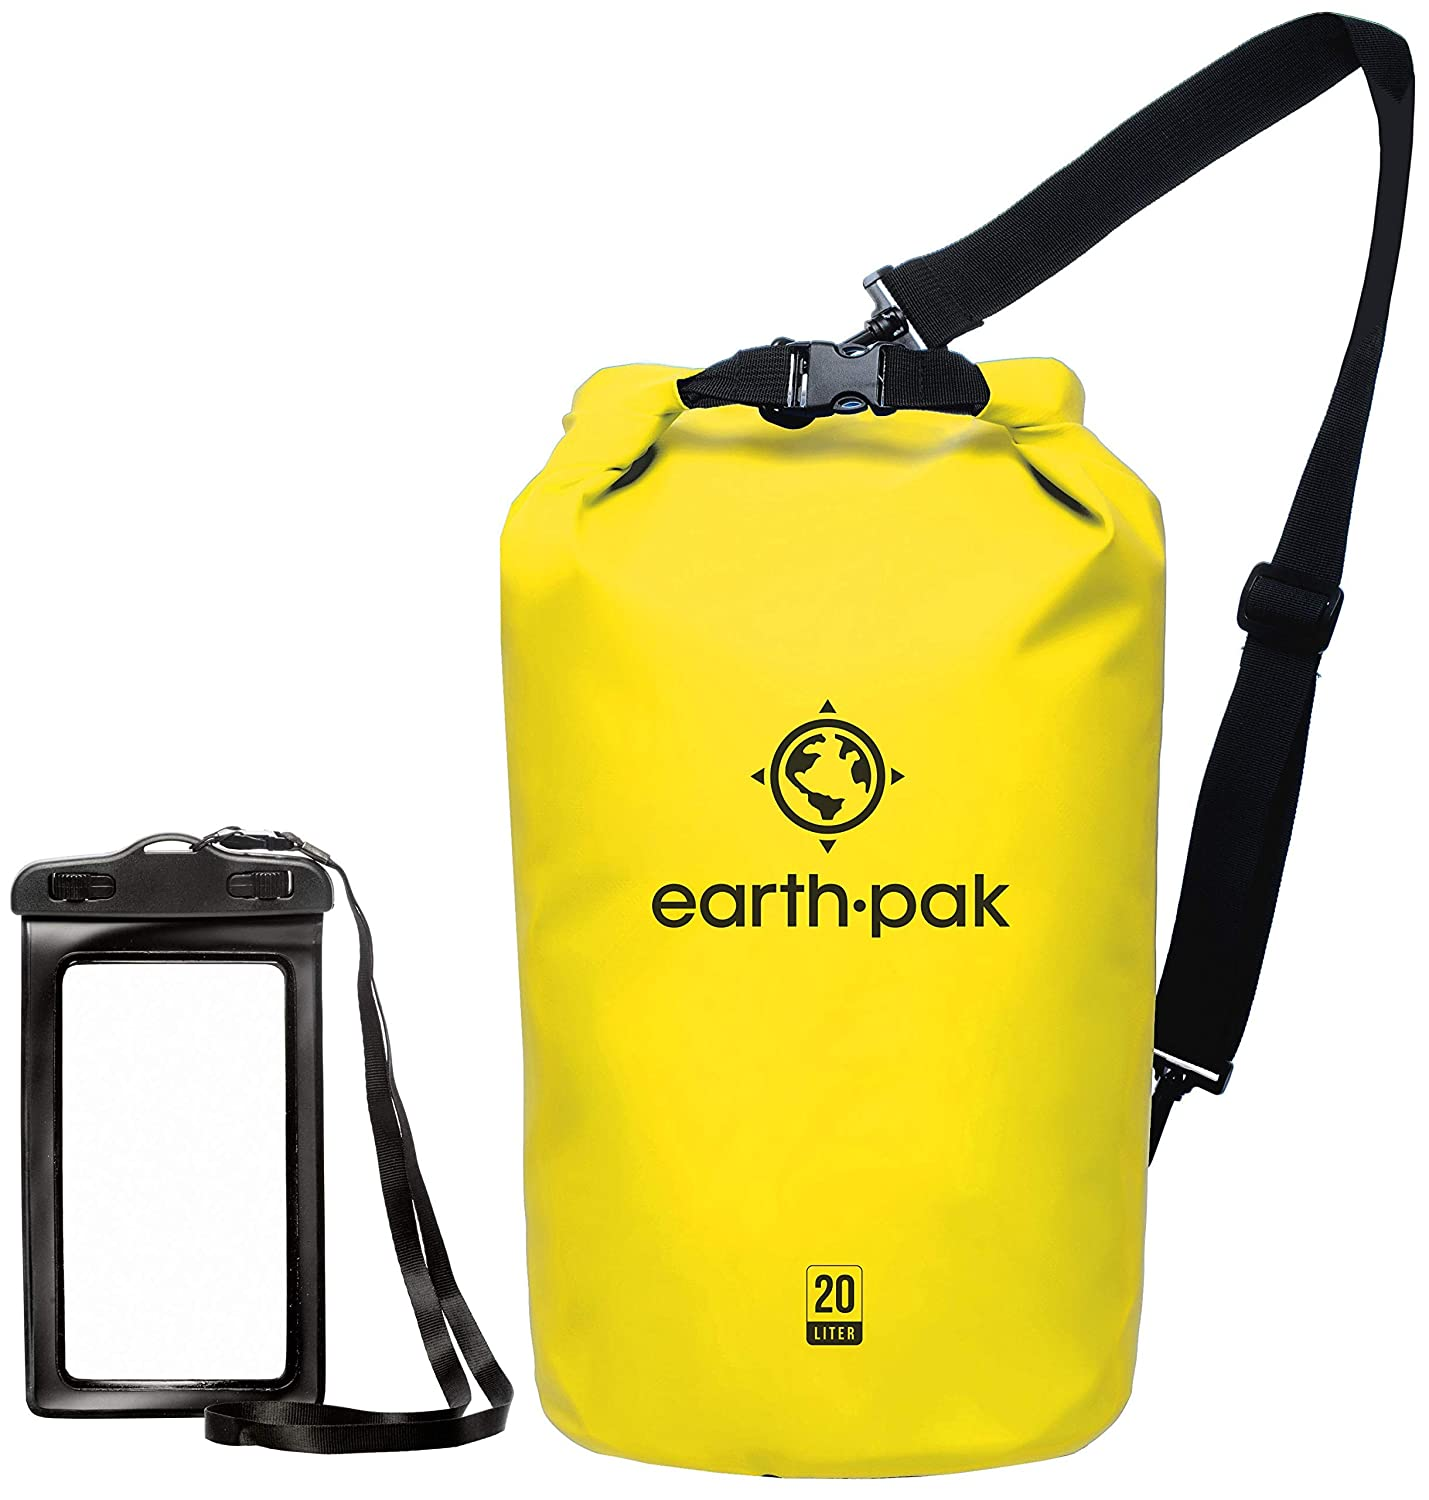 Earth Pak -Waterproof Dry Bag - Roll Top Dry Compression Sack Keeps Gear Dry for Kayaking, Beach, Rafting, Boating, Hiking, Camping and Fishing with Waterproof Phone Case [並行輸入品] B07R4VN4L1